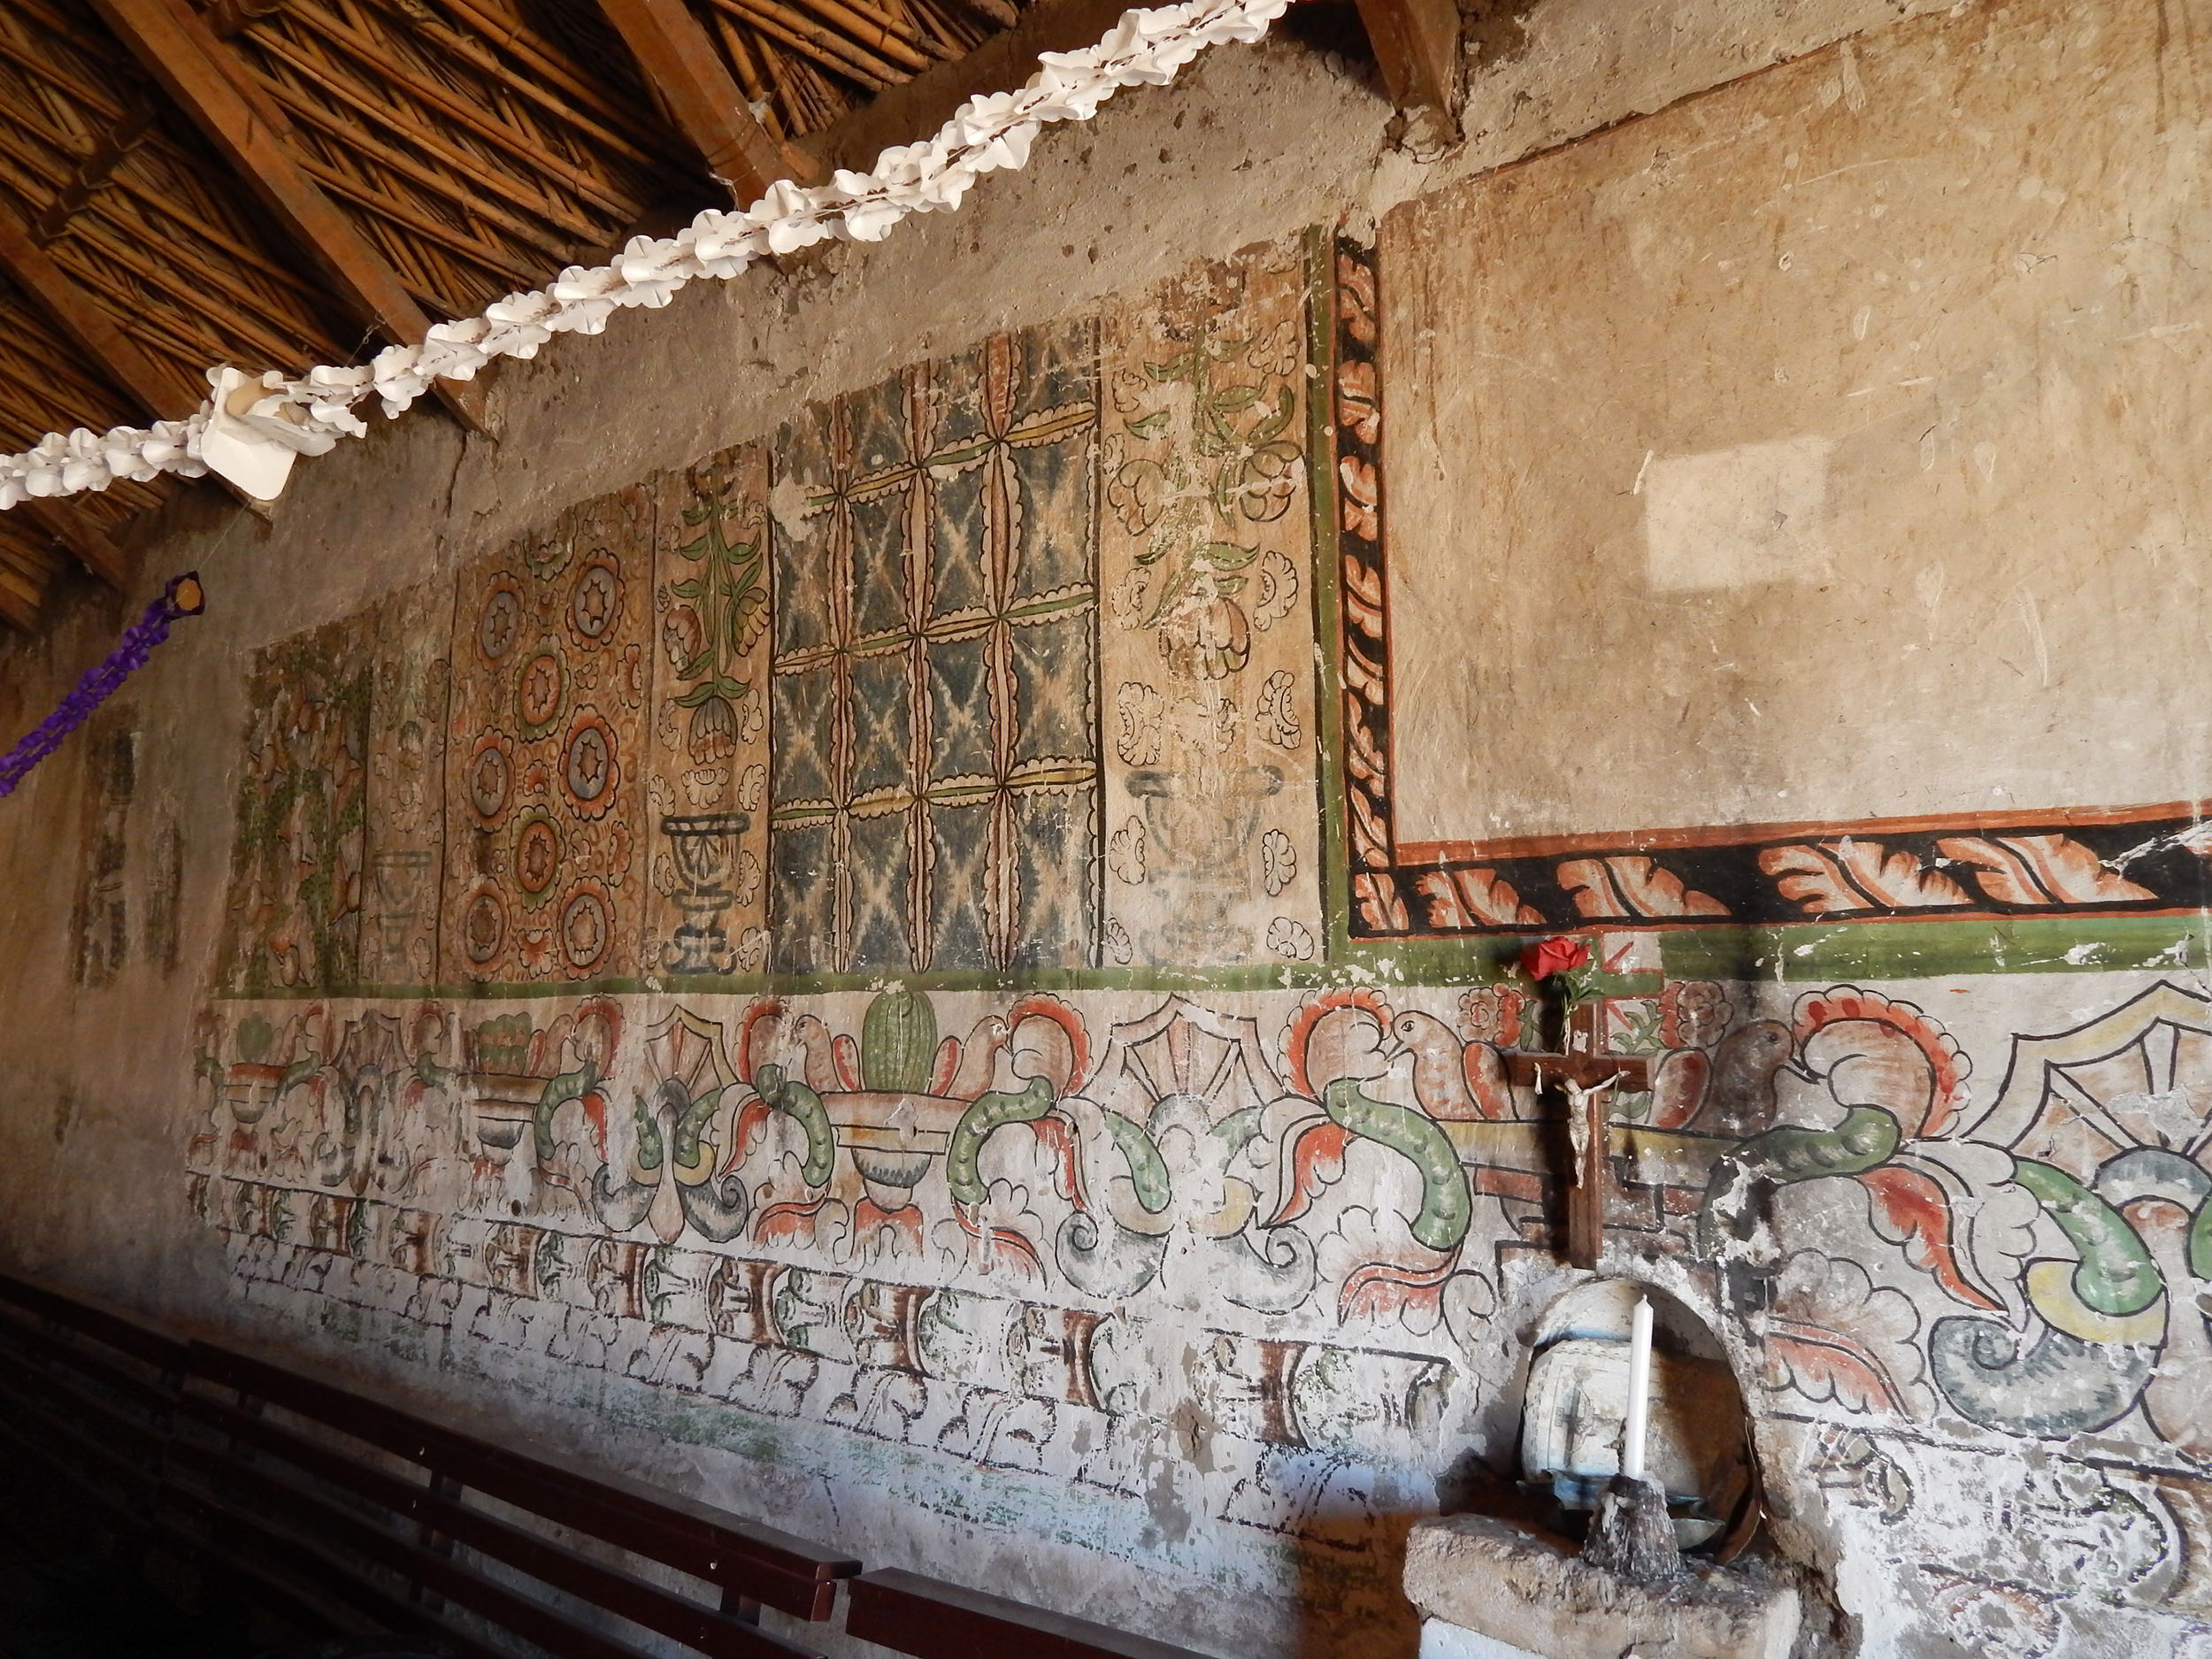 Fig. 22 Close-up of textile murals with frieze of flowerpots, birds, and flowers below. Church of Pachama, 18th century, Arica and Parinacota Region (Chile). Photo by author.